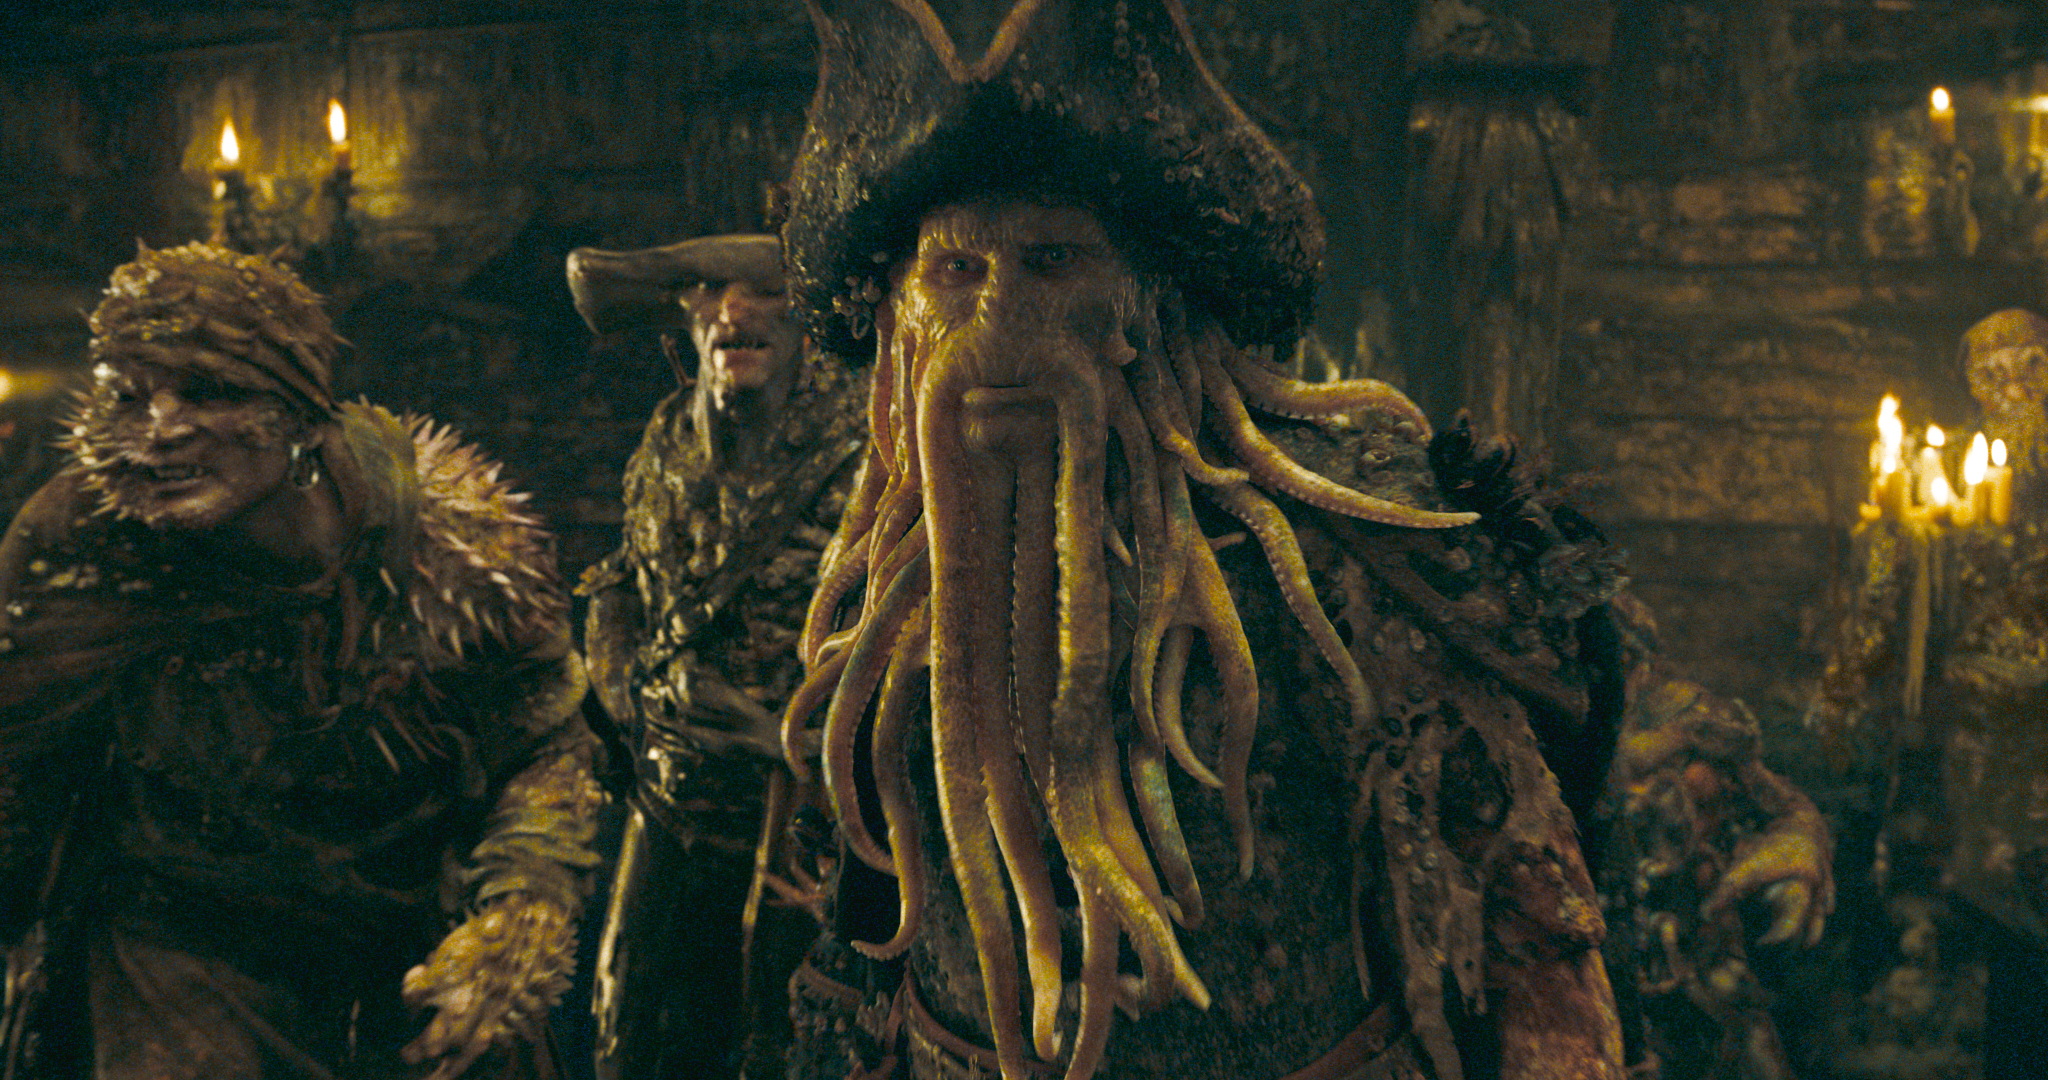 DAVY JONES - Pirates of the Caribbean Encyclopedia